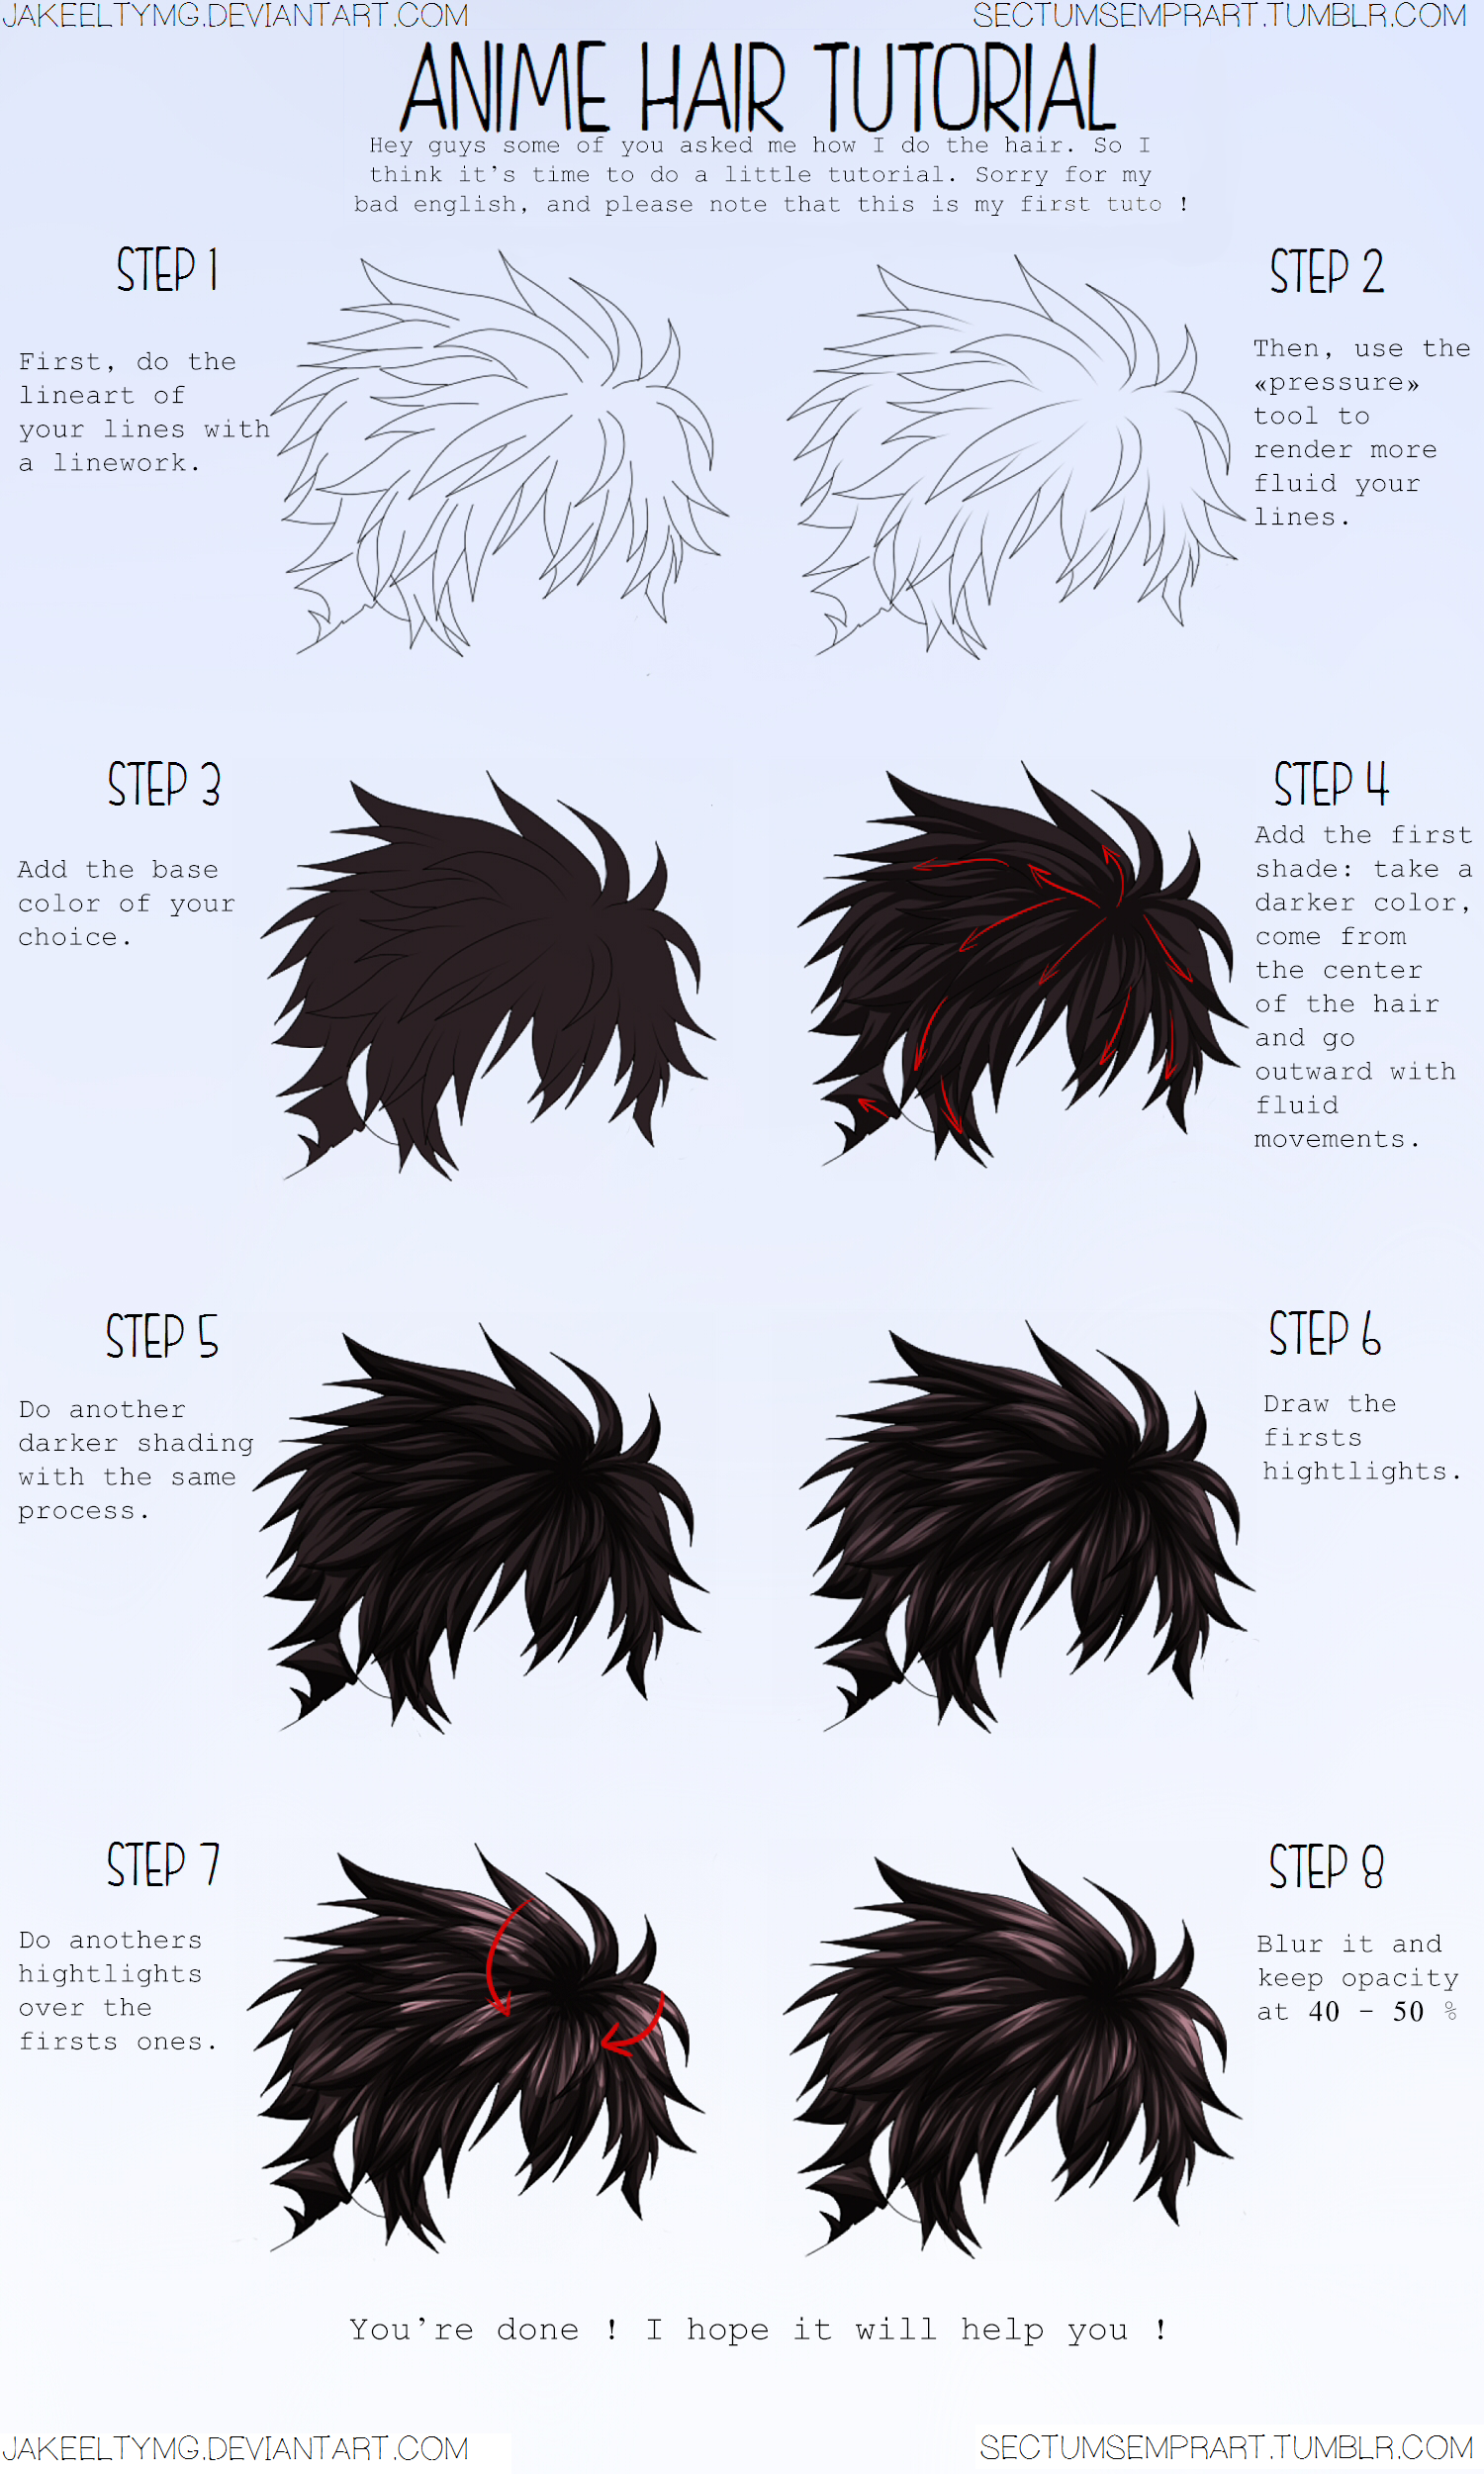 Hair Colouring Tutorial By Blurrymls On Deviantart Coloring Tutorial Digital Art Tutorial Digital Painting Tutorials